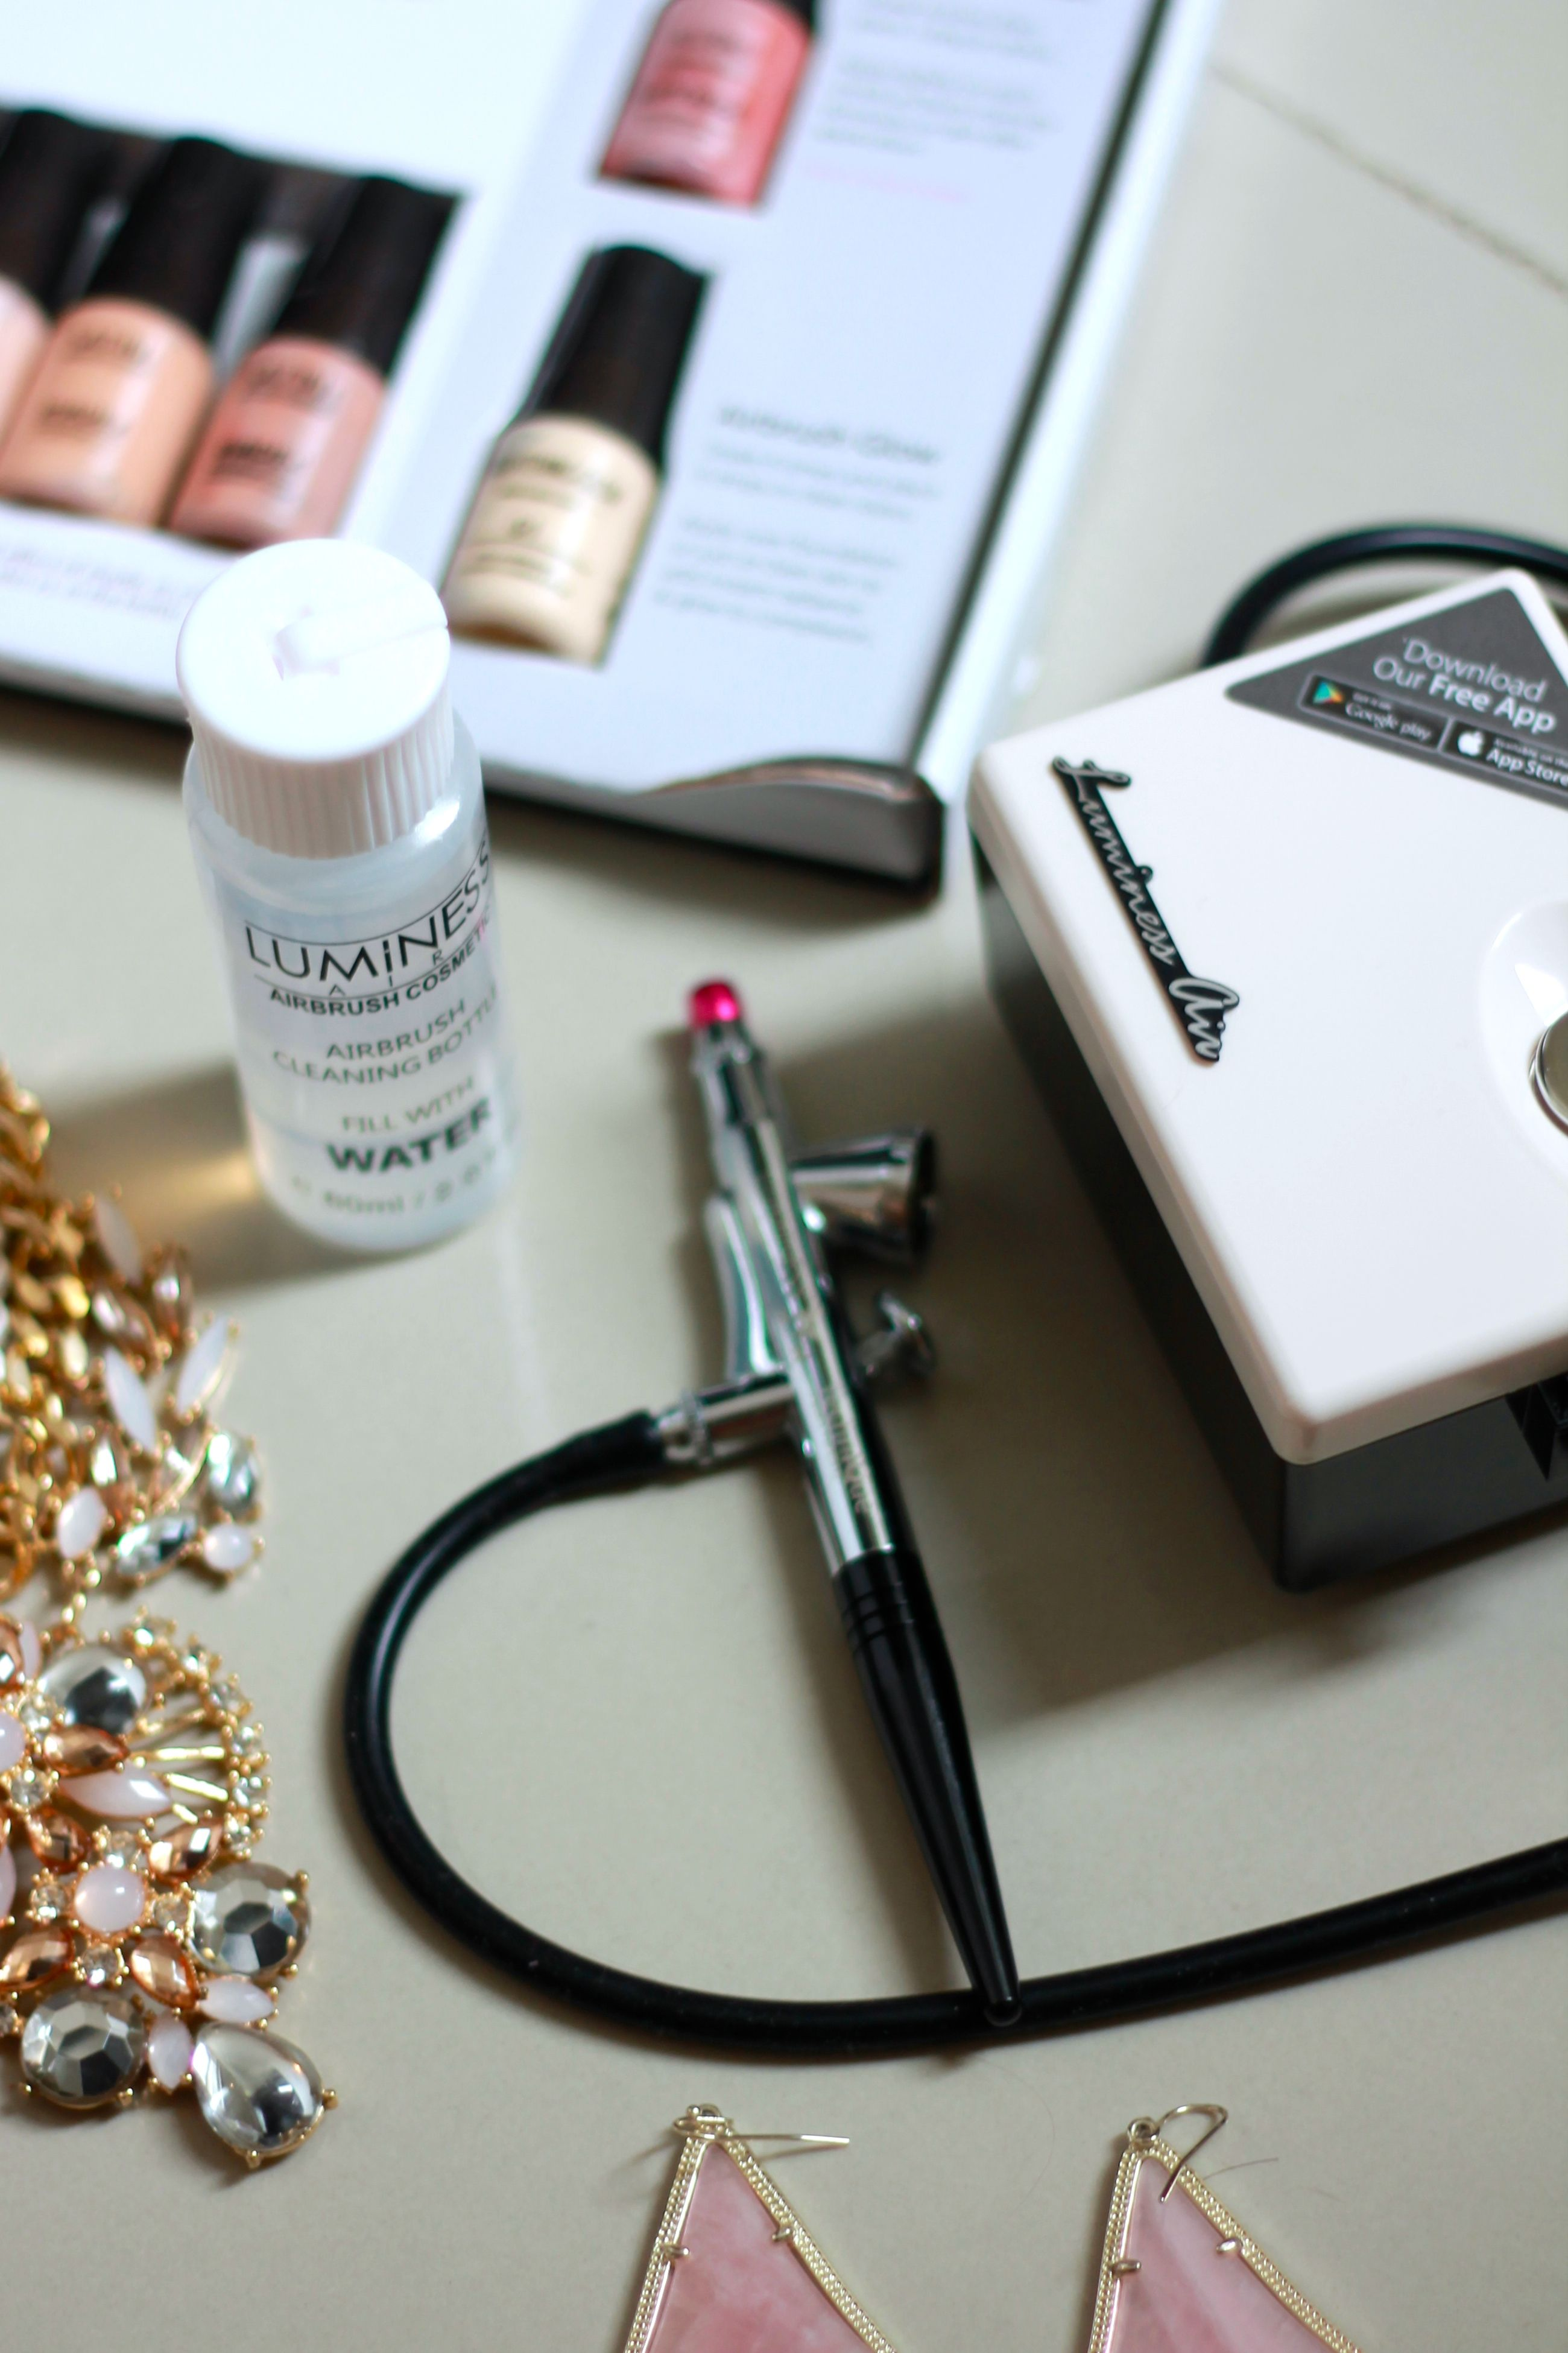 5 Tips for Airbrush Makeup at Home with Luminess Makeup